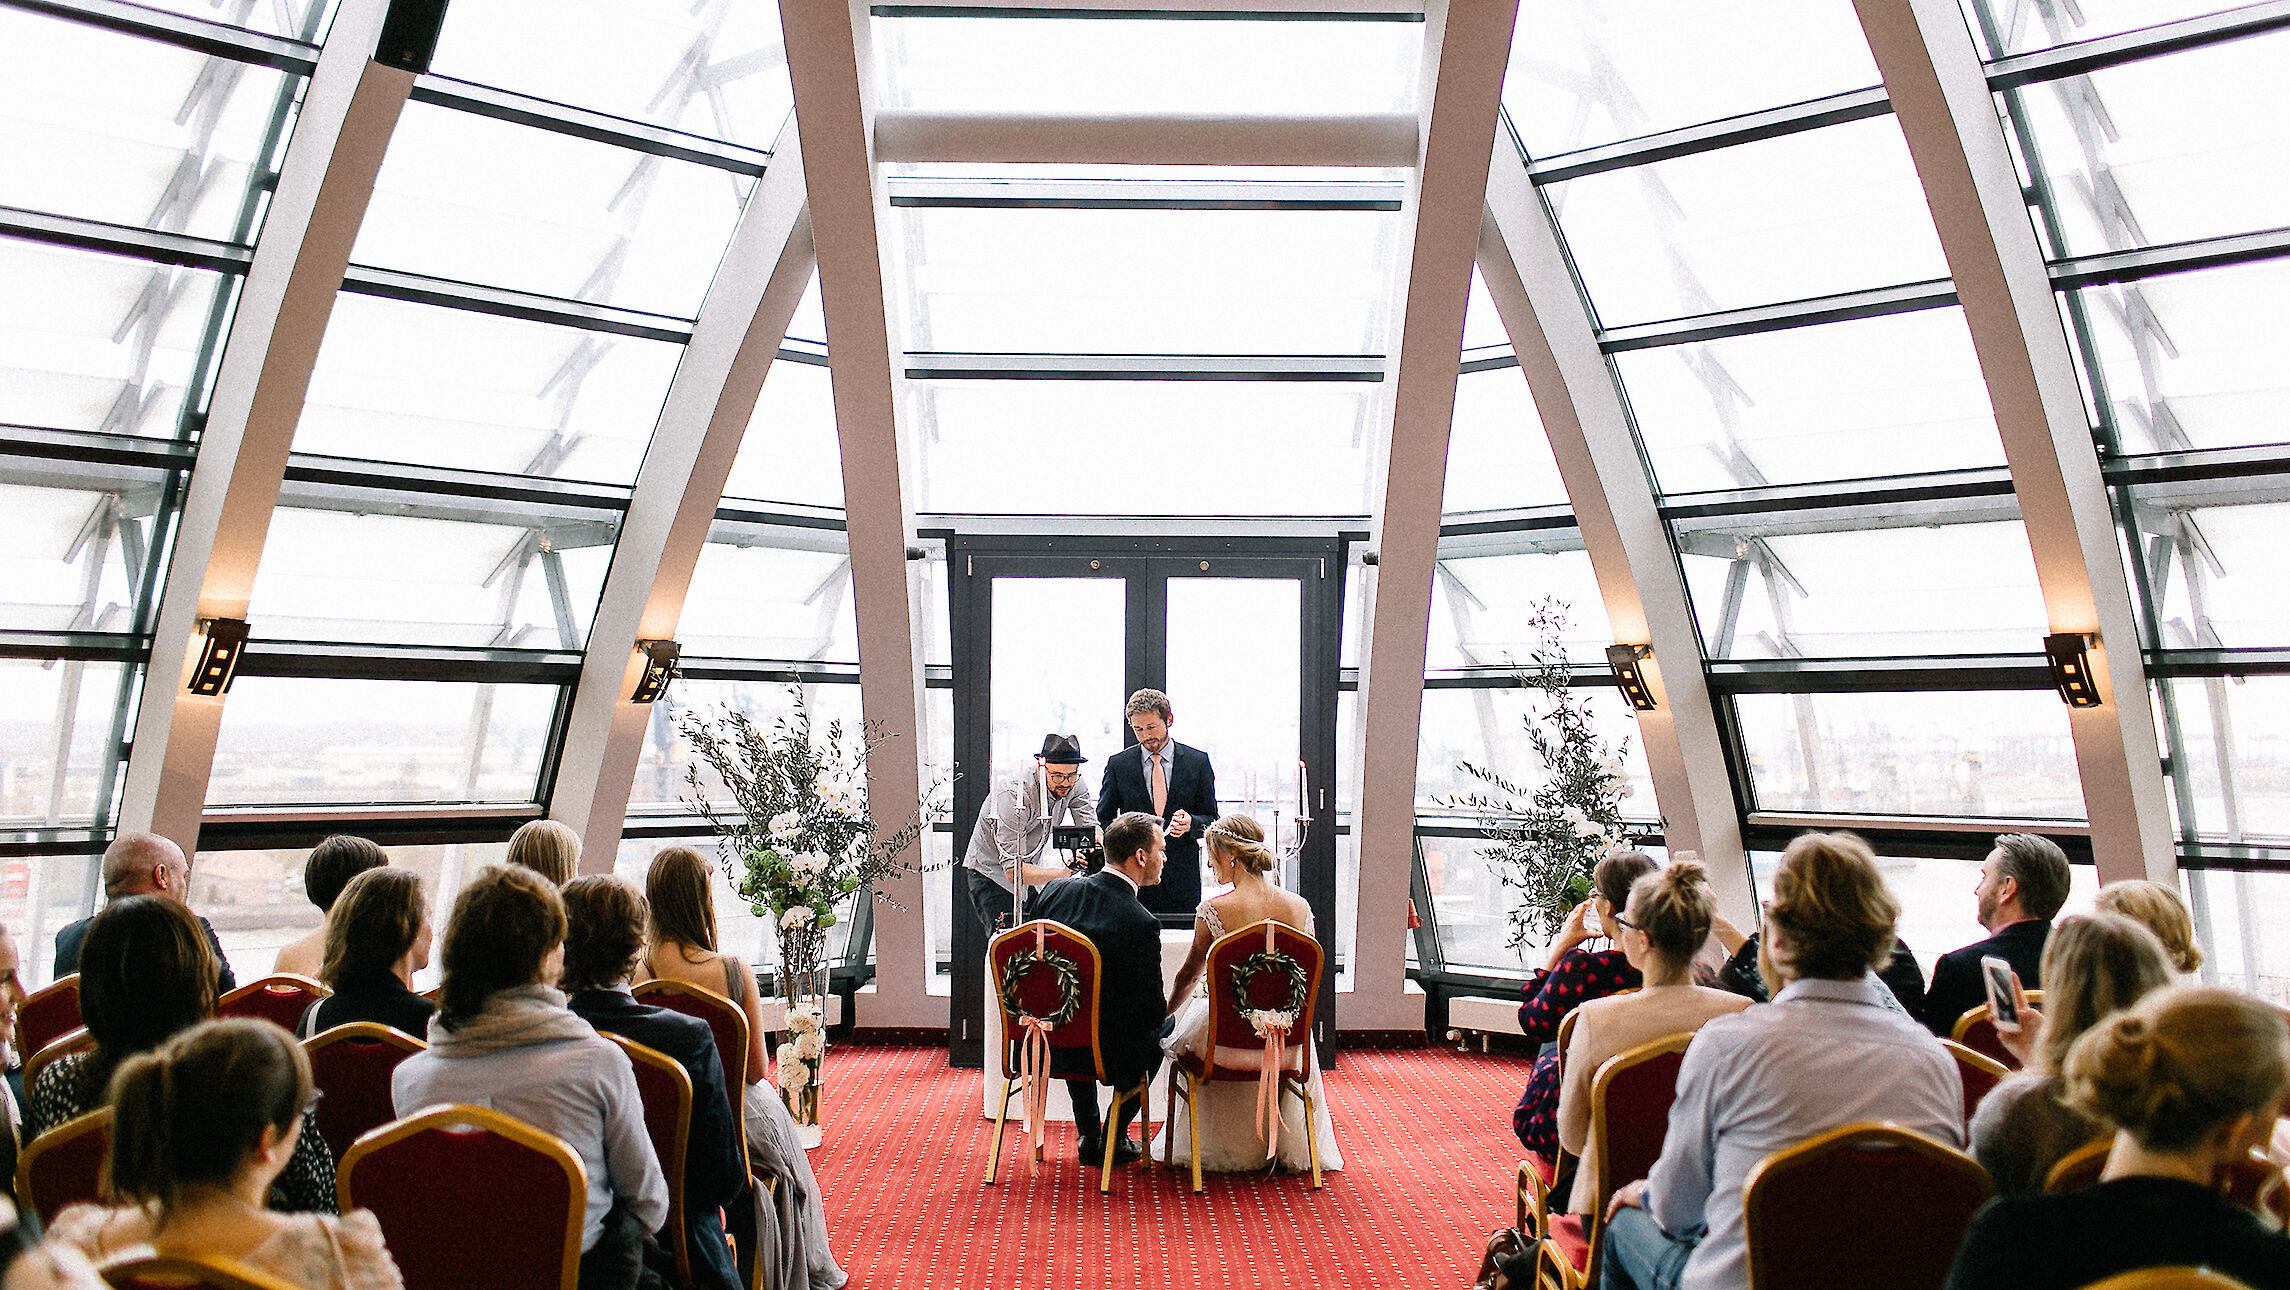 Wedding | Ceremony | Totale | Hotel Hafen Hamburg